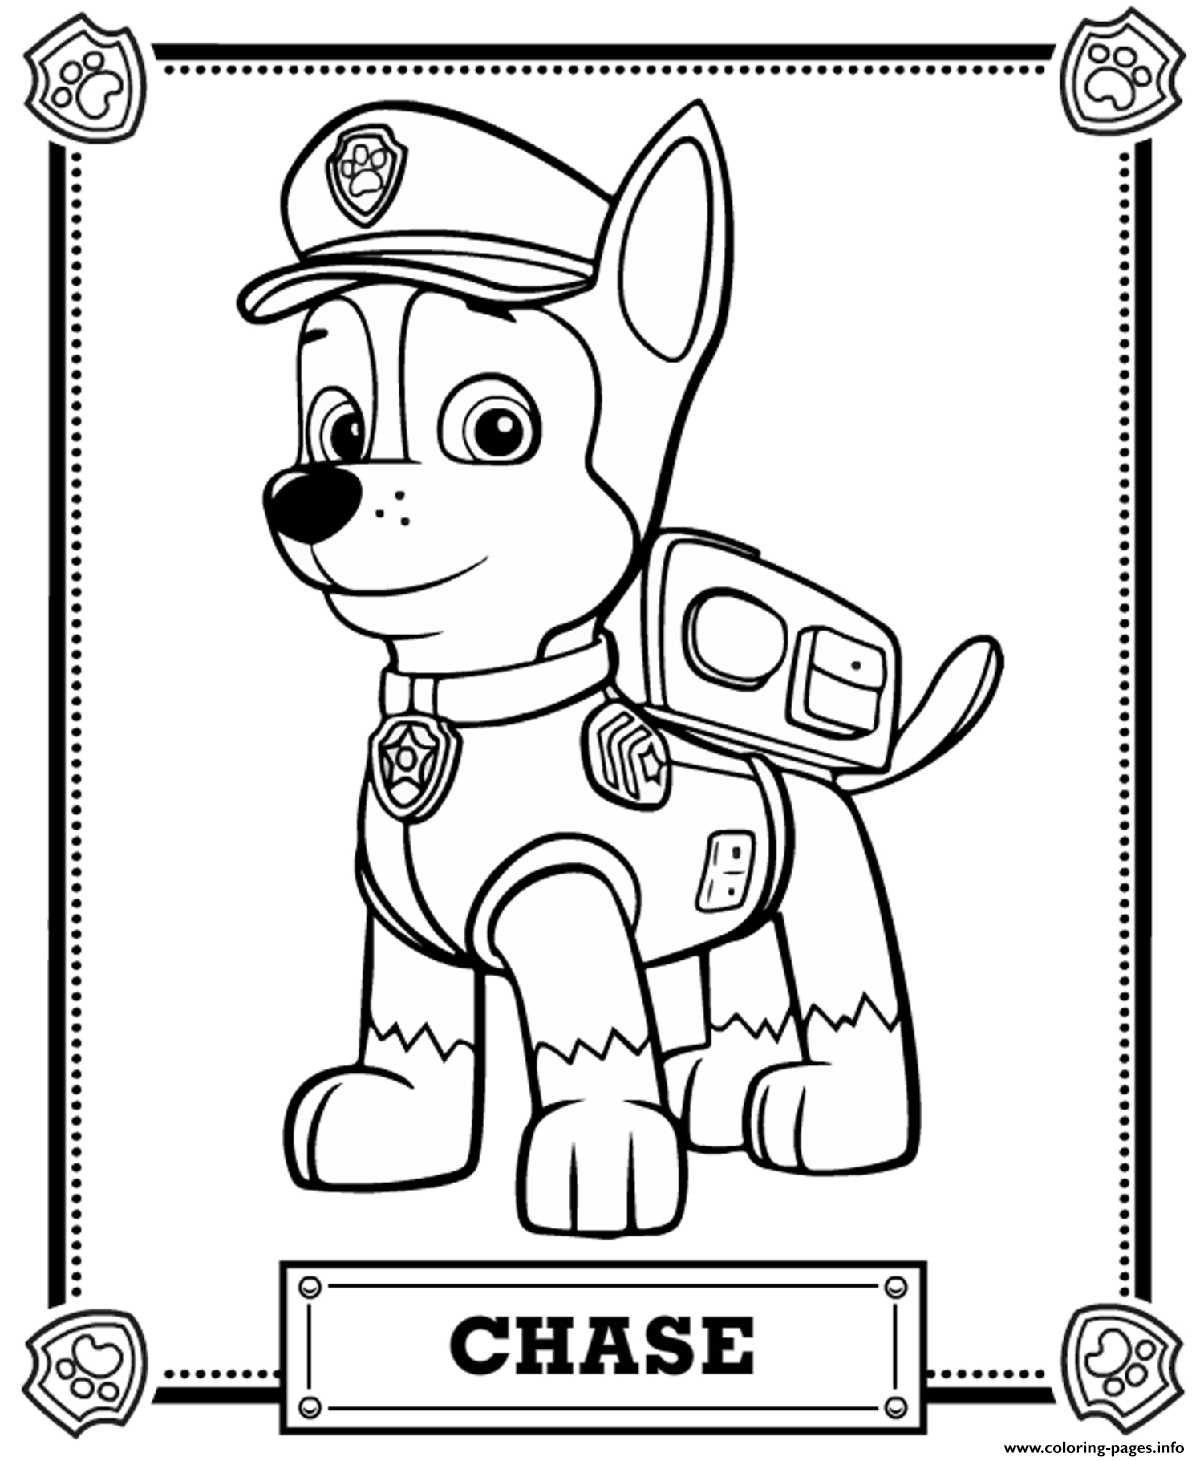 Paw Patrol Chase Coloring Pages Printable